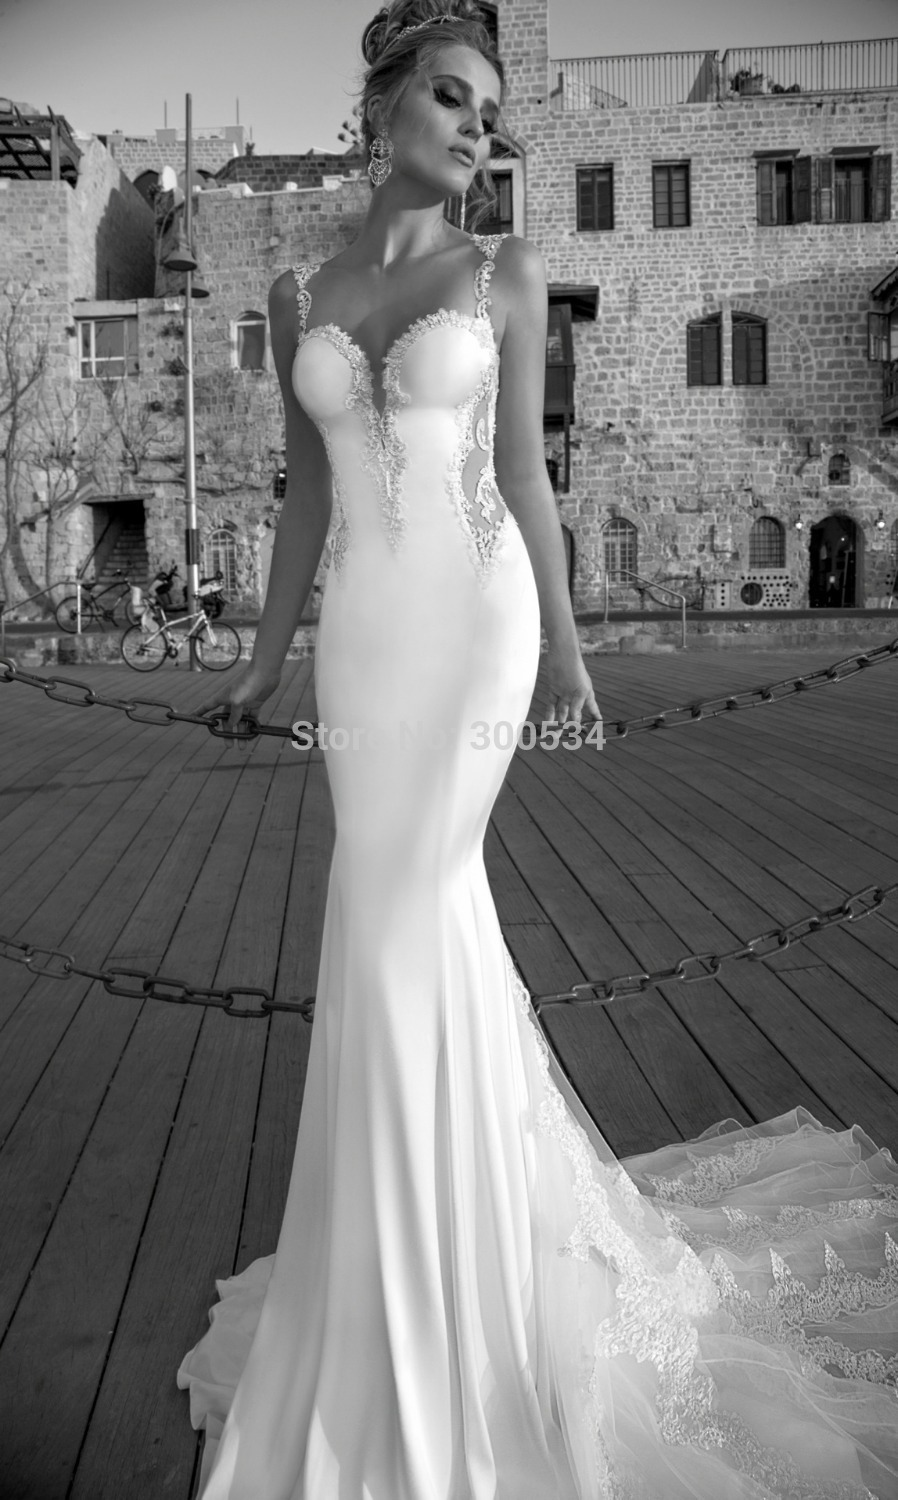 Luxury Berta Bridal Gown Prices Ensign - Wedding Plan Ideas ...